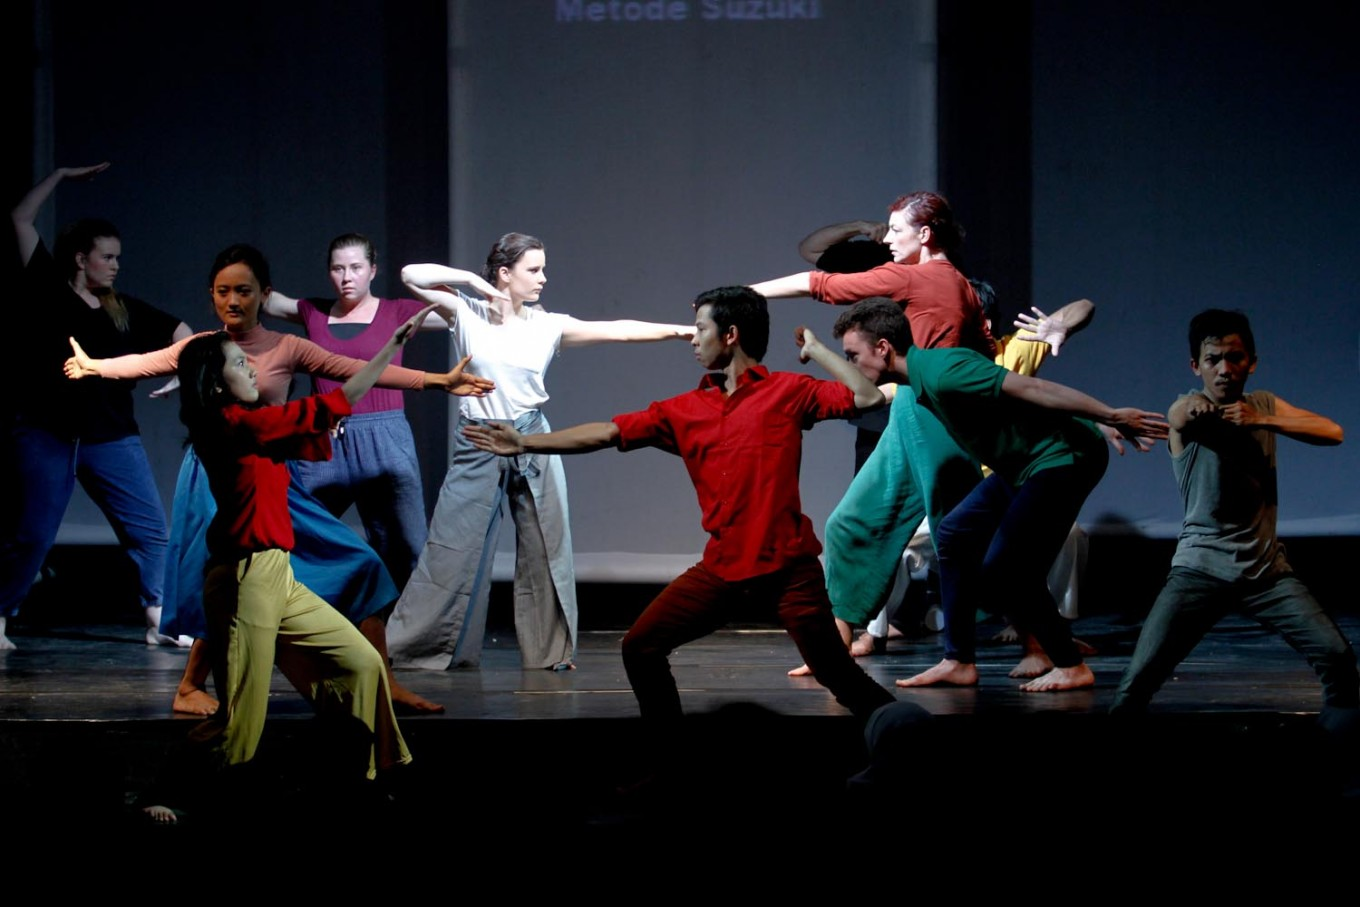 In addition to using two languages, the show also conveys its message through dance. .